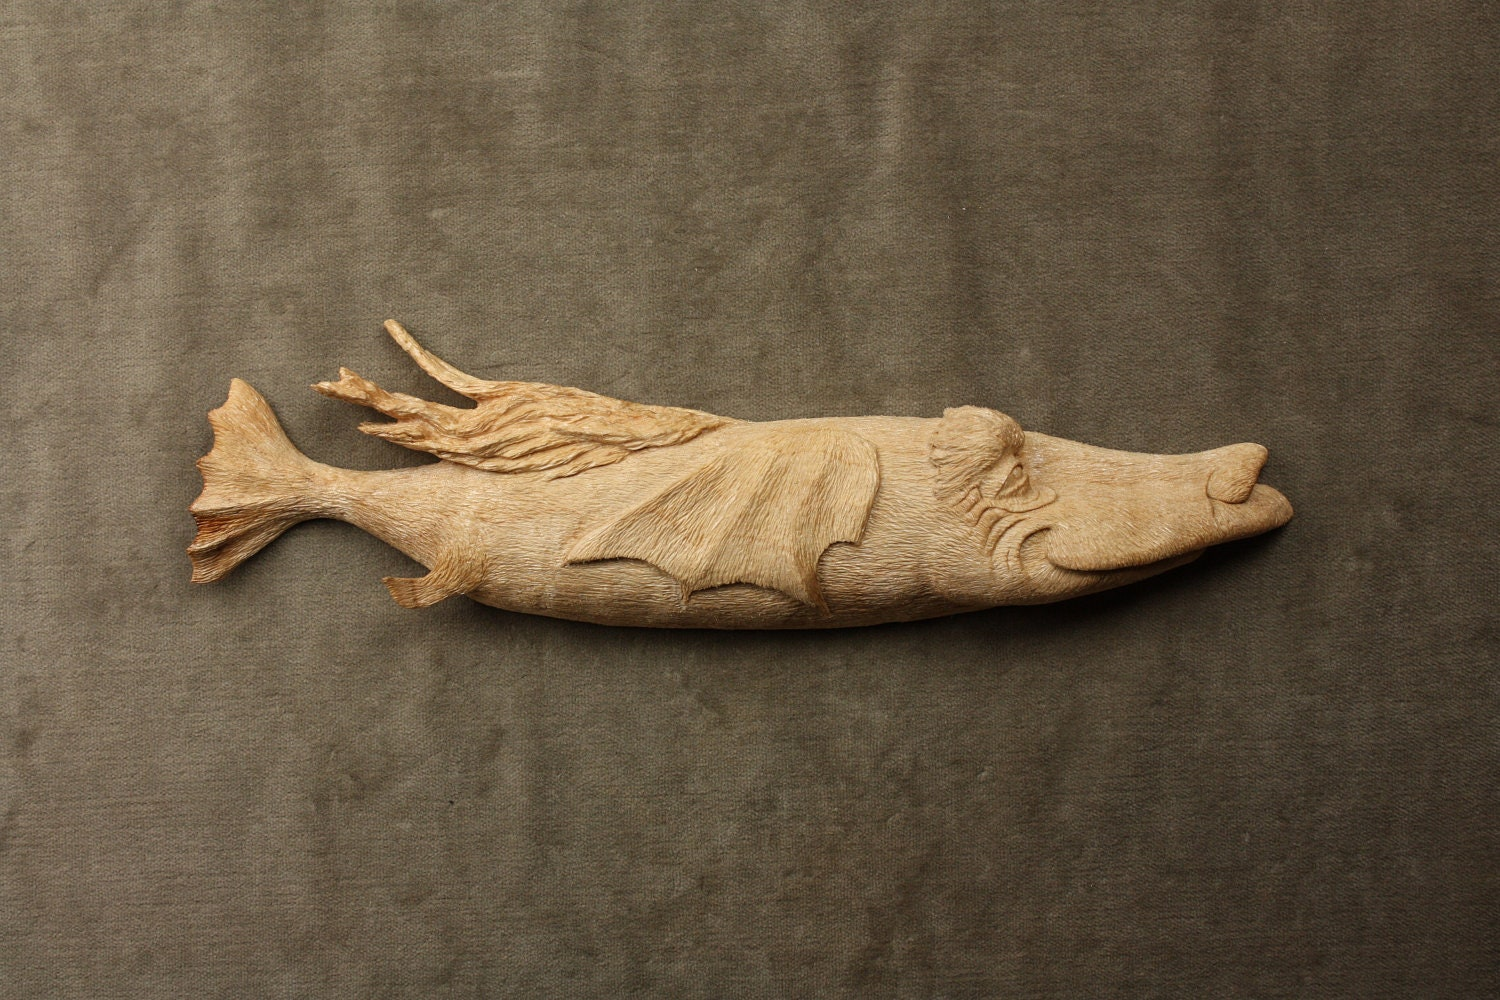 Whimsical fish art wood carving by treewizwoodcarvings on etsy for Fish wood carving